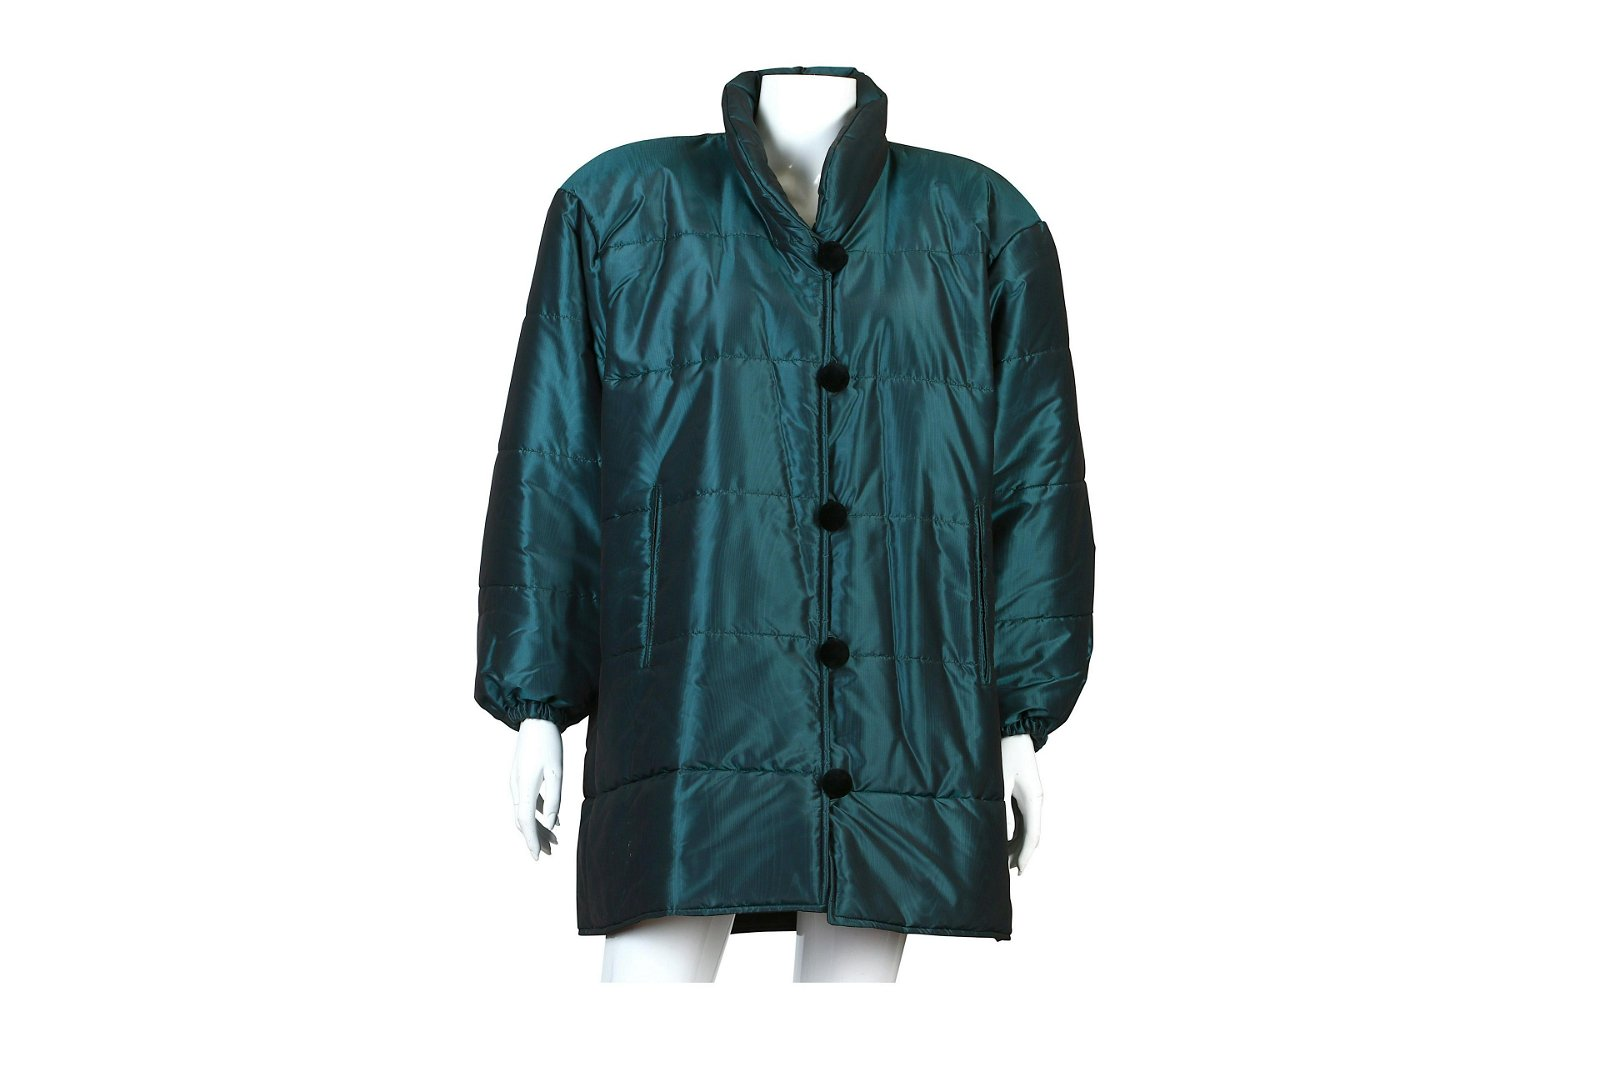 Yves Saint Laurent Teal Puffer Jacket